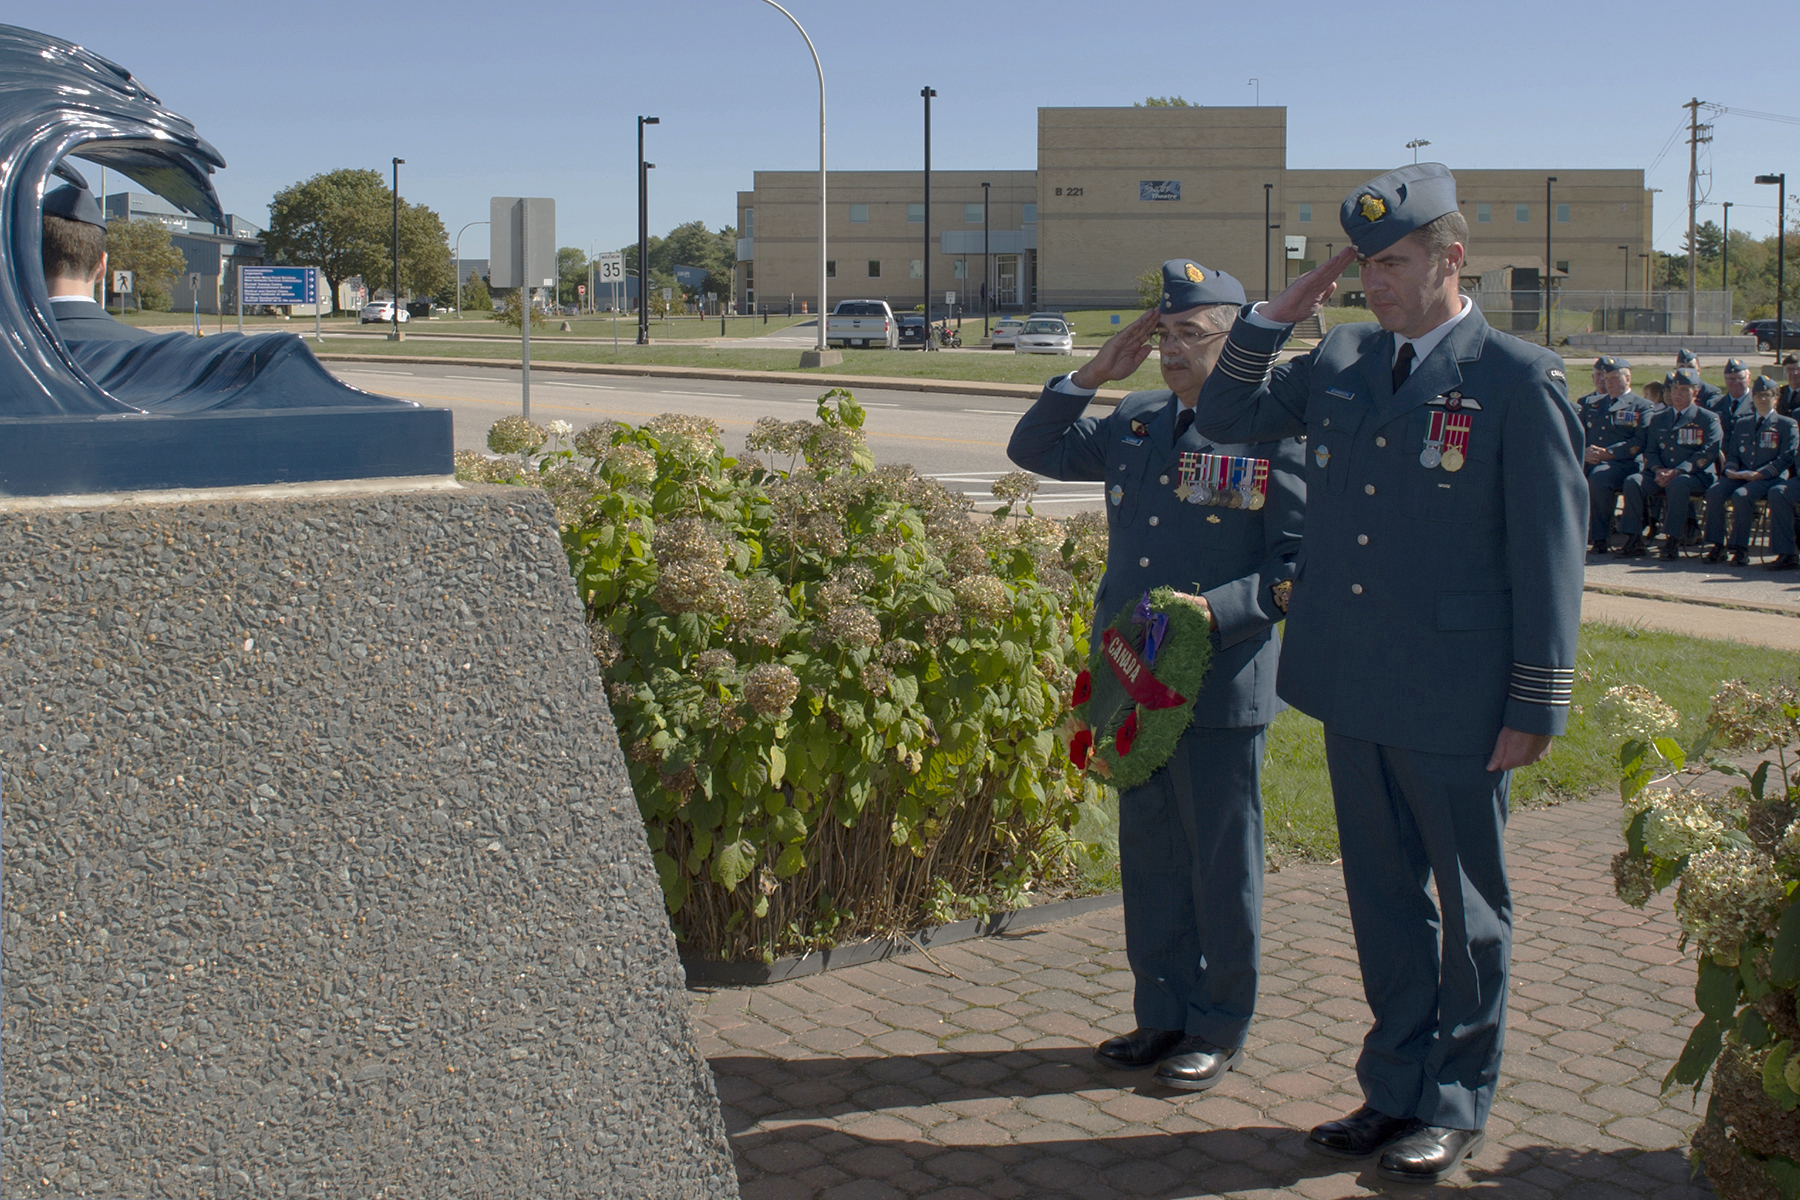 Two men, one holding a wreath, wear medium-blue uniforms with poppies and salute at a stone memorial, while many more people in similar uniforms stand in the background